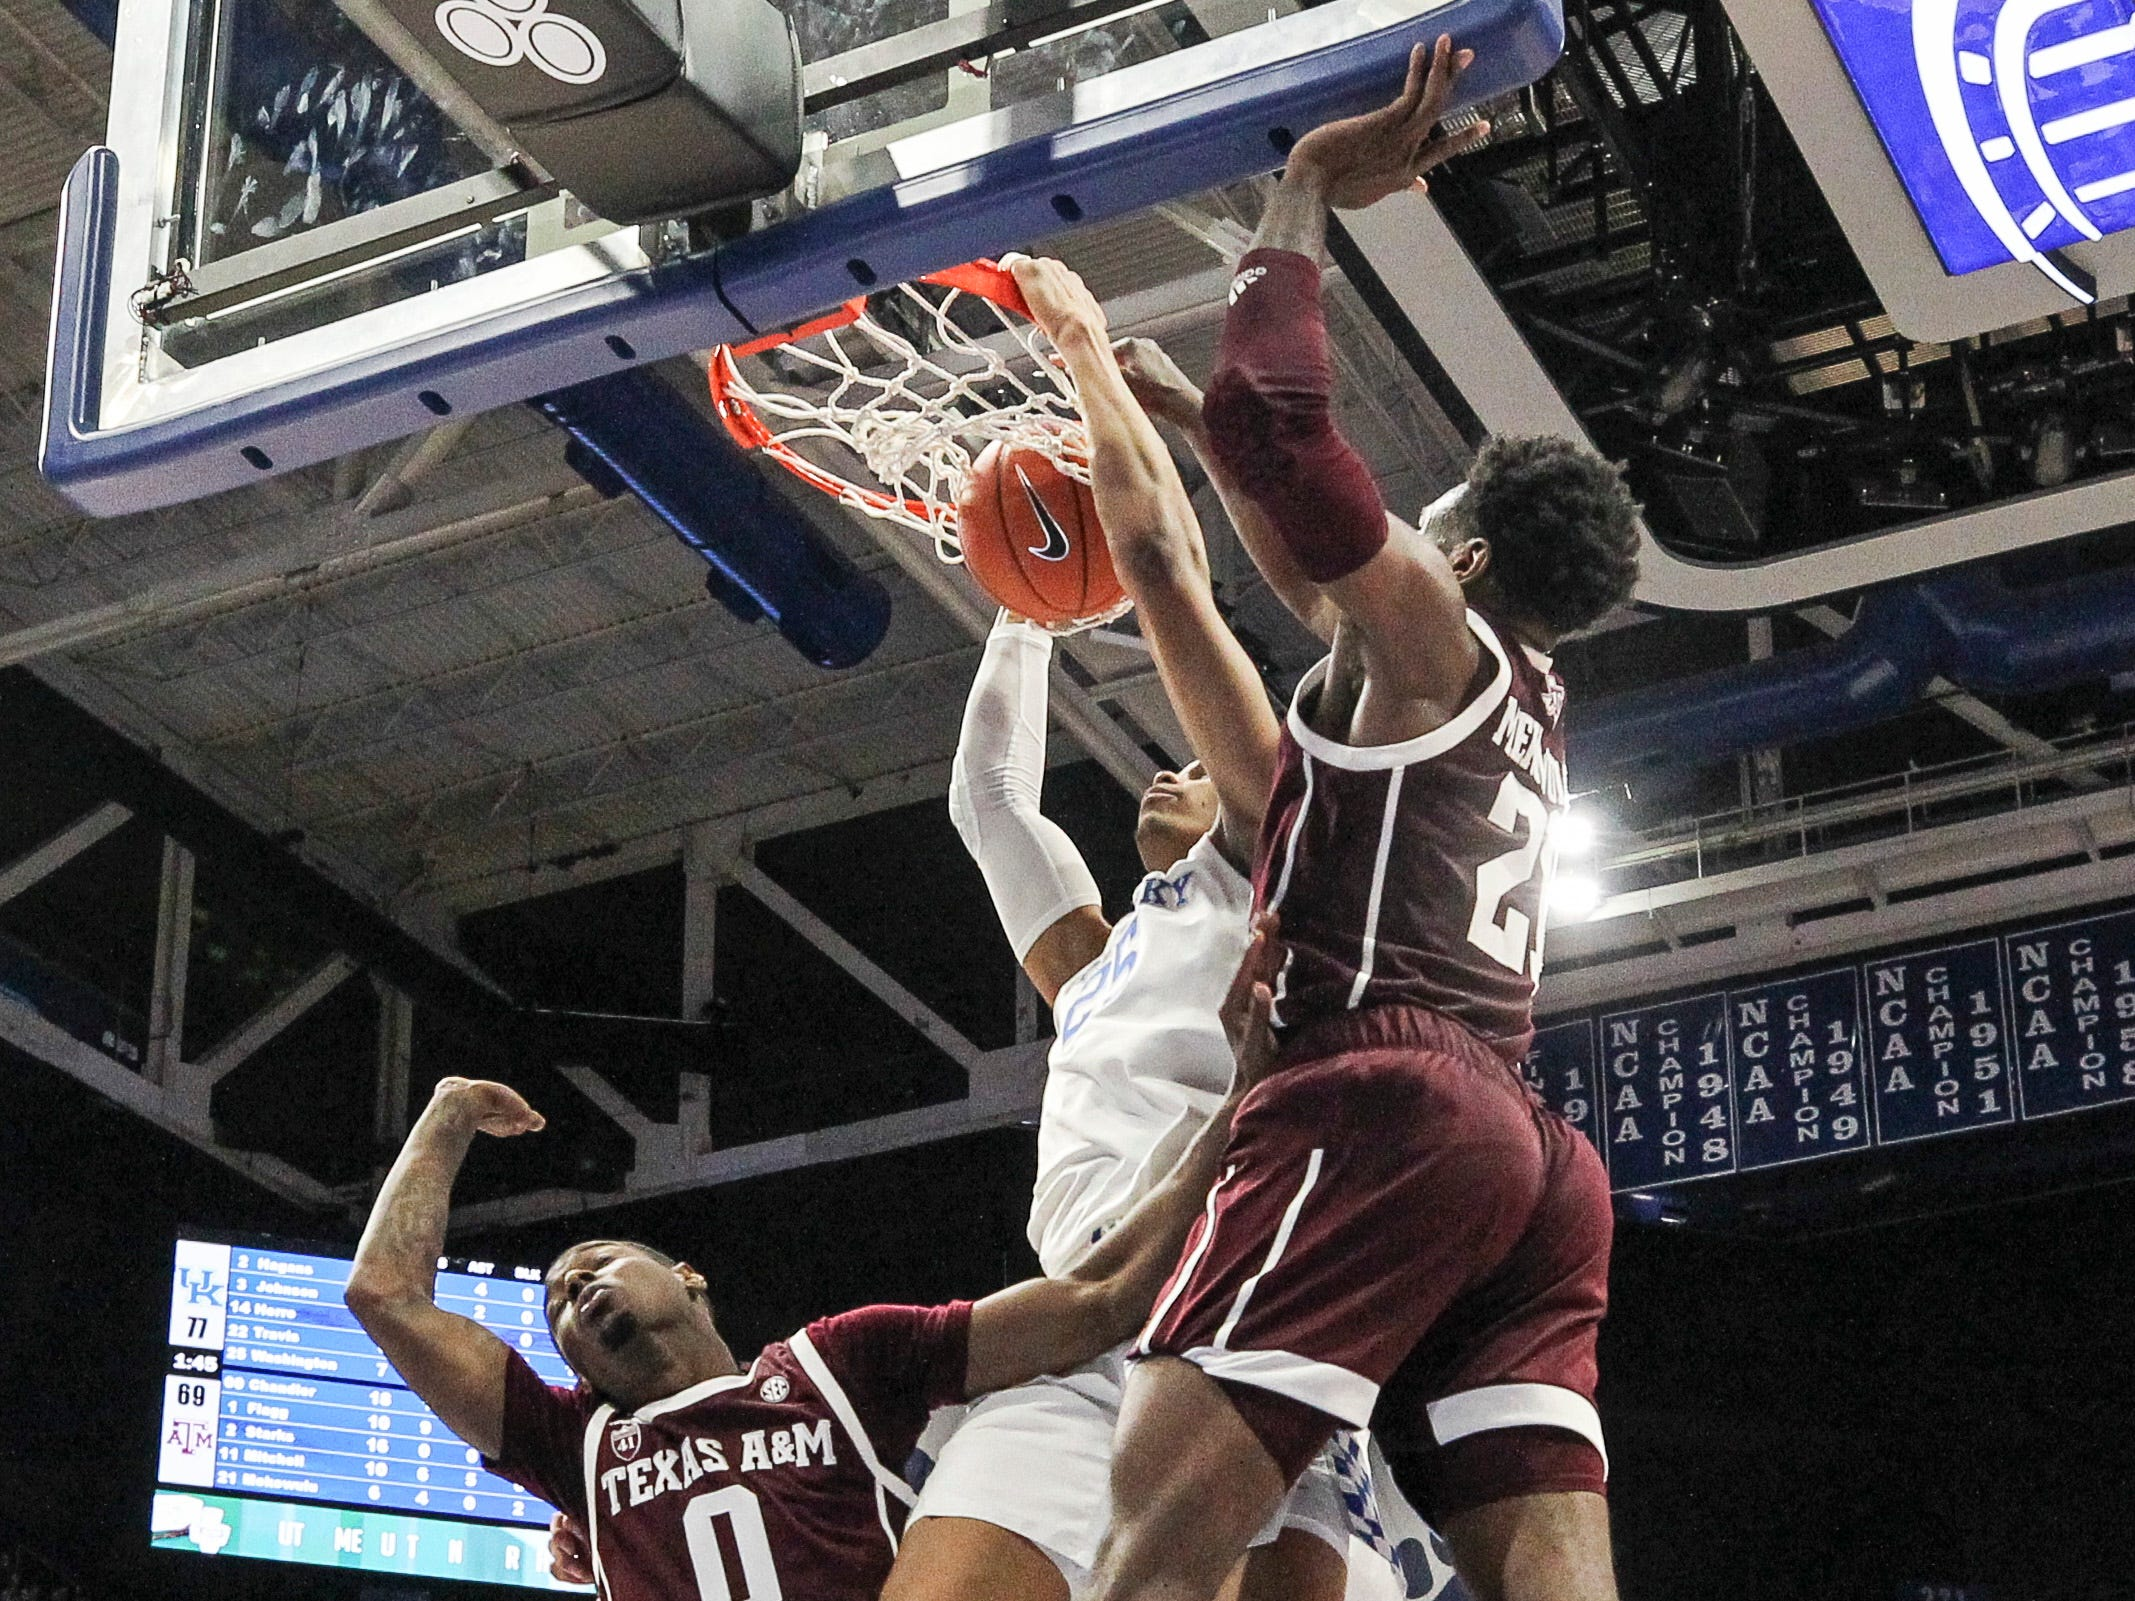 Kentucky's PJ Washington, Jr. had this dunk and nine points with five rebounds in the Cats 85-74 win over Texas A&M Tuesday night. January 8, 2019